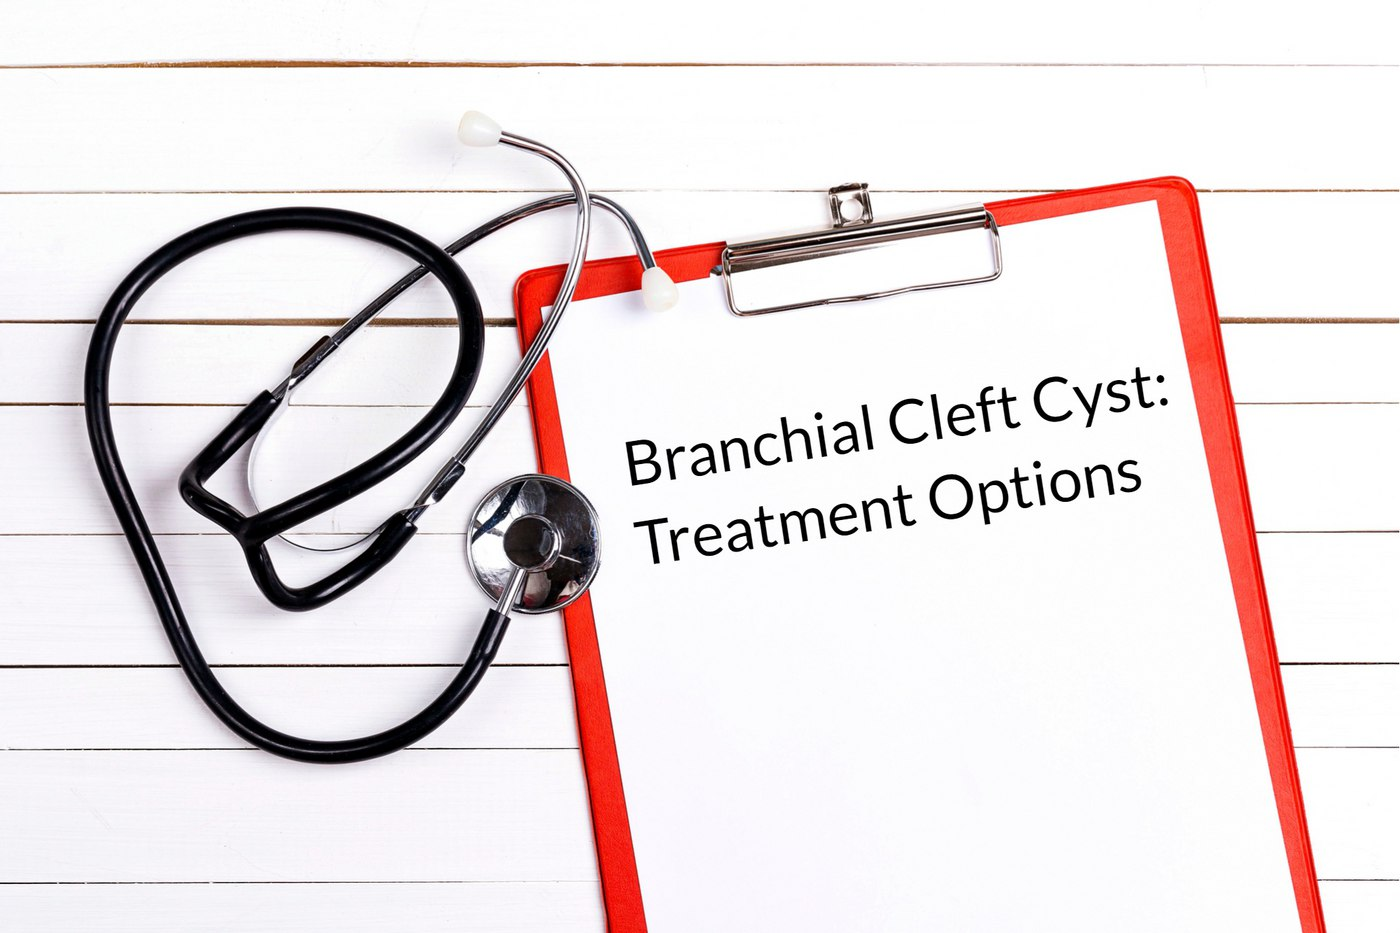 Branchial Cleft Cyst Treatment Options